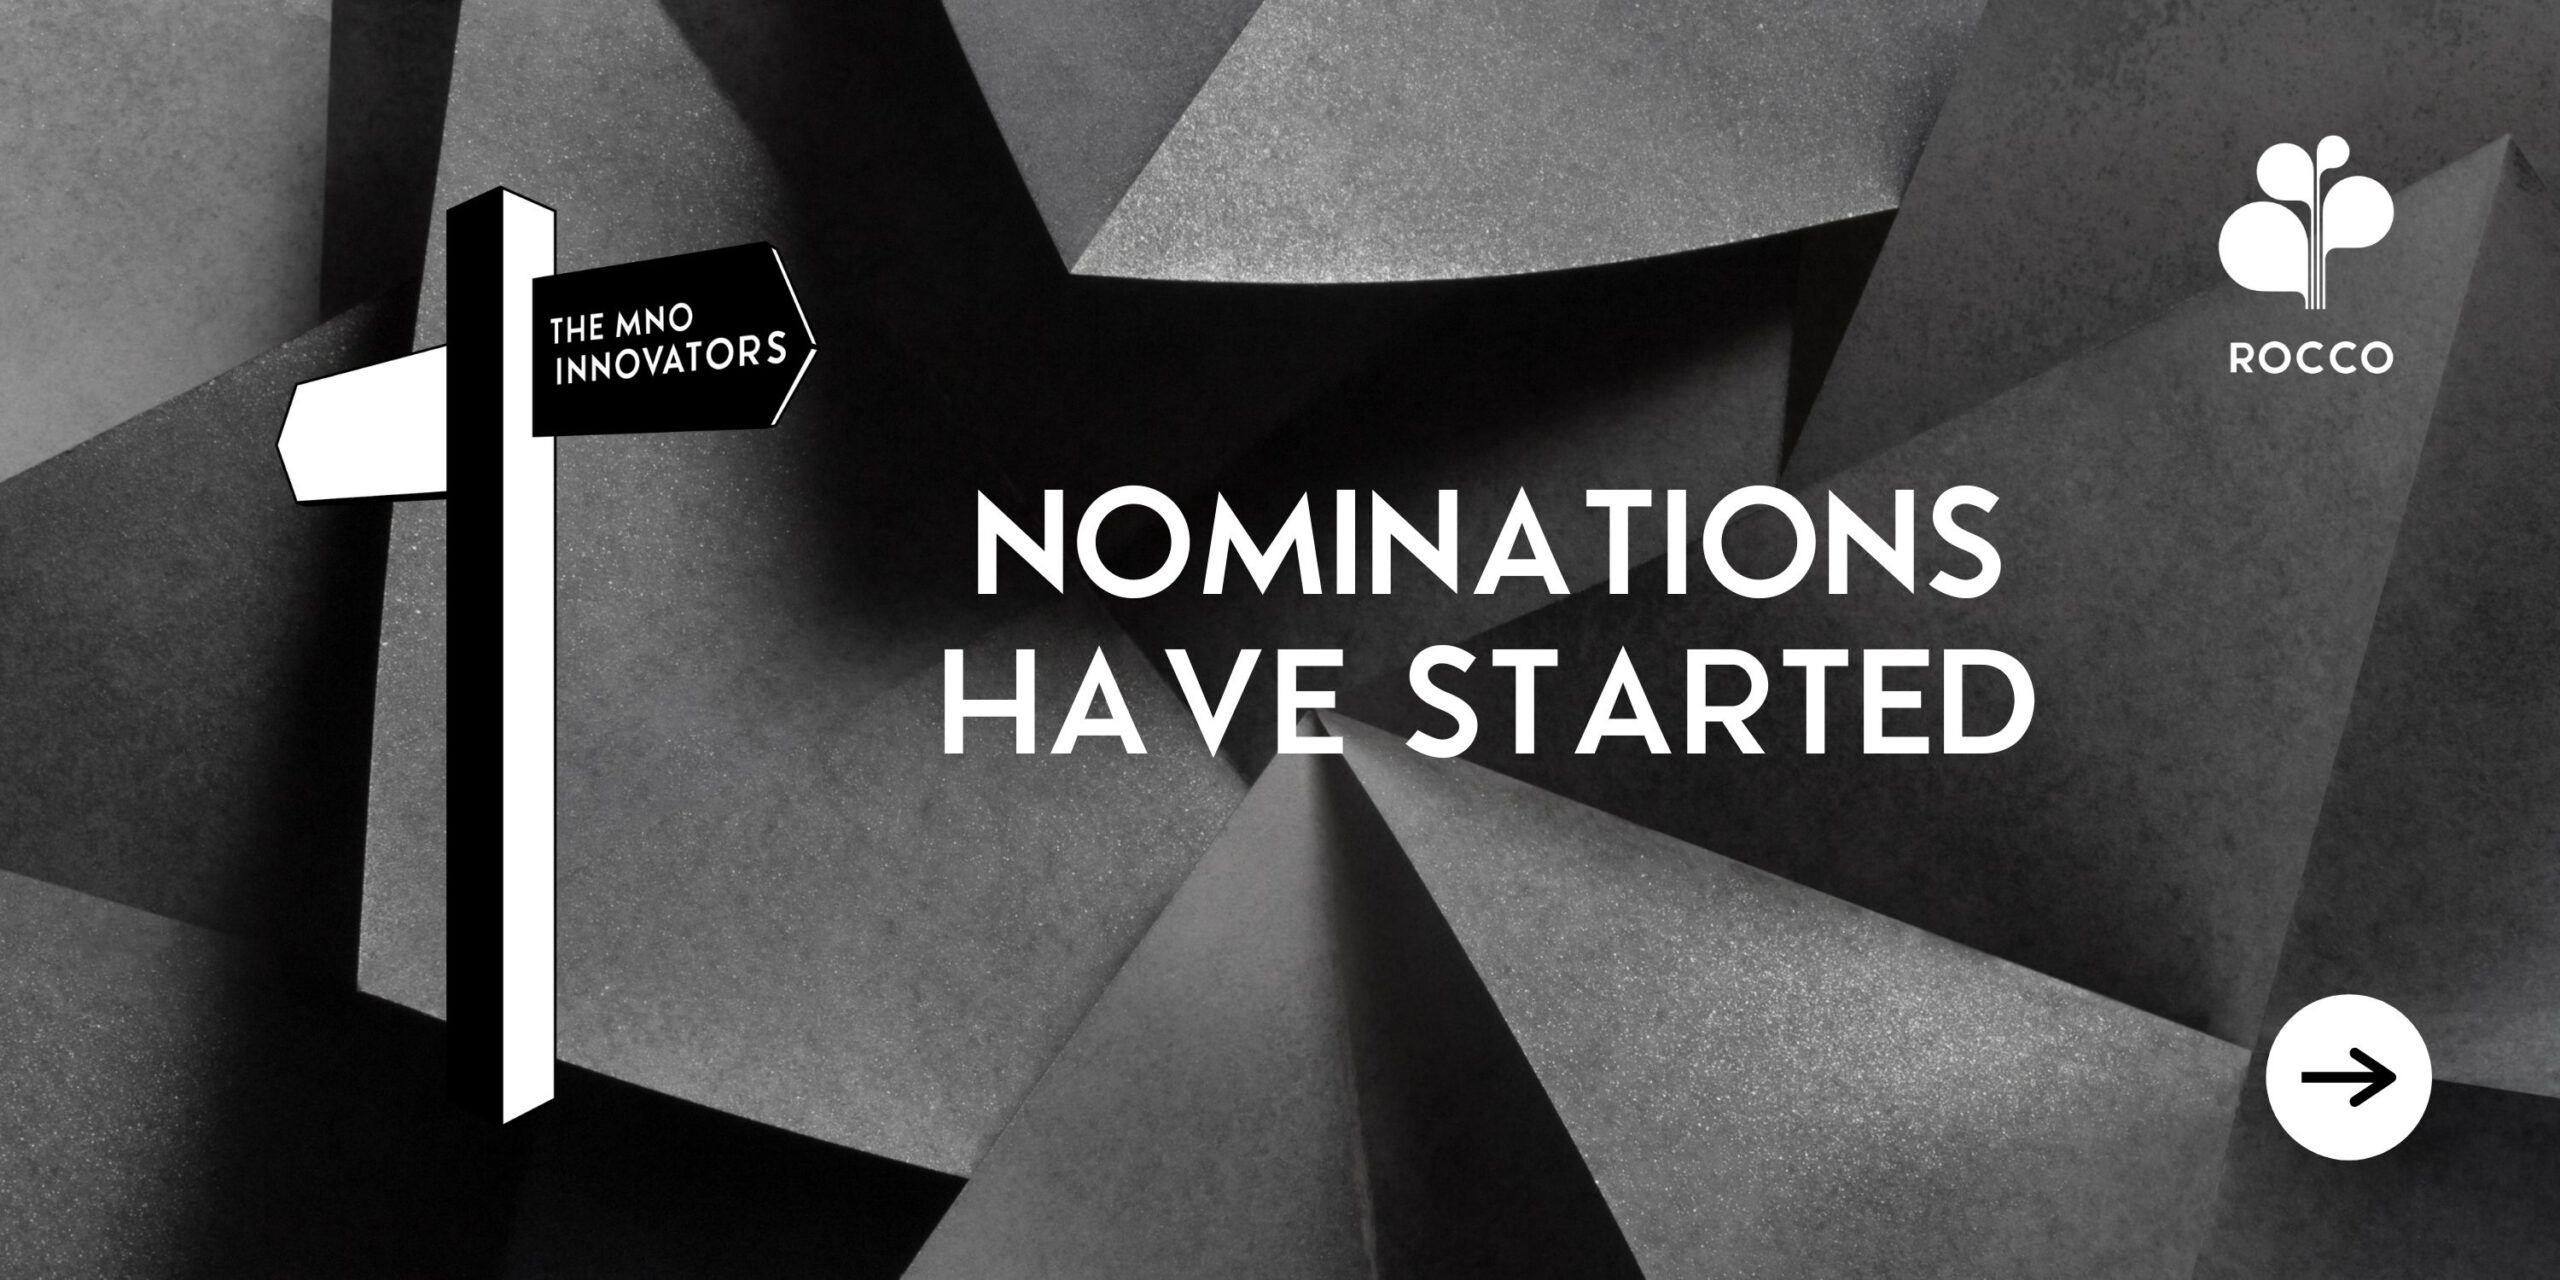 Nominations are open for The MNO Innovators